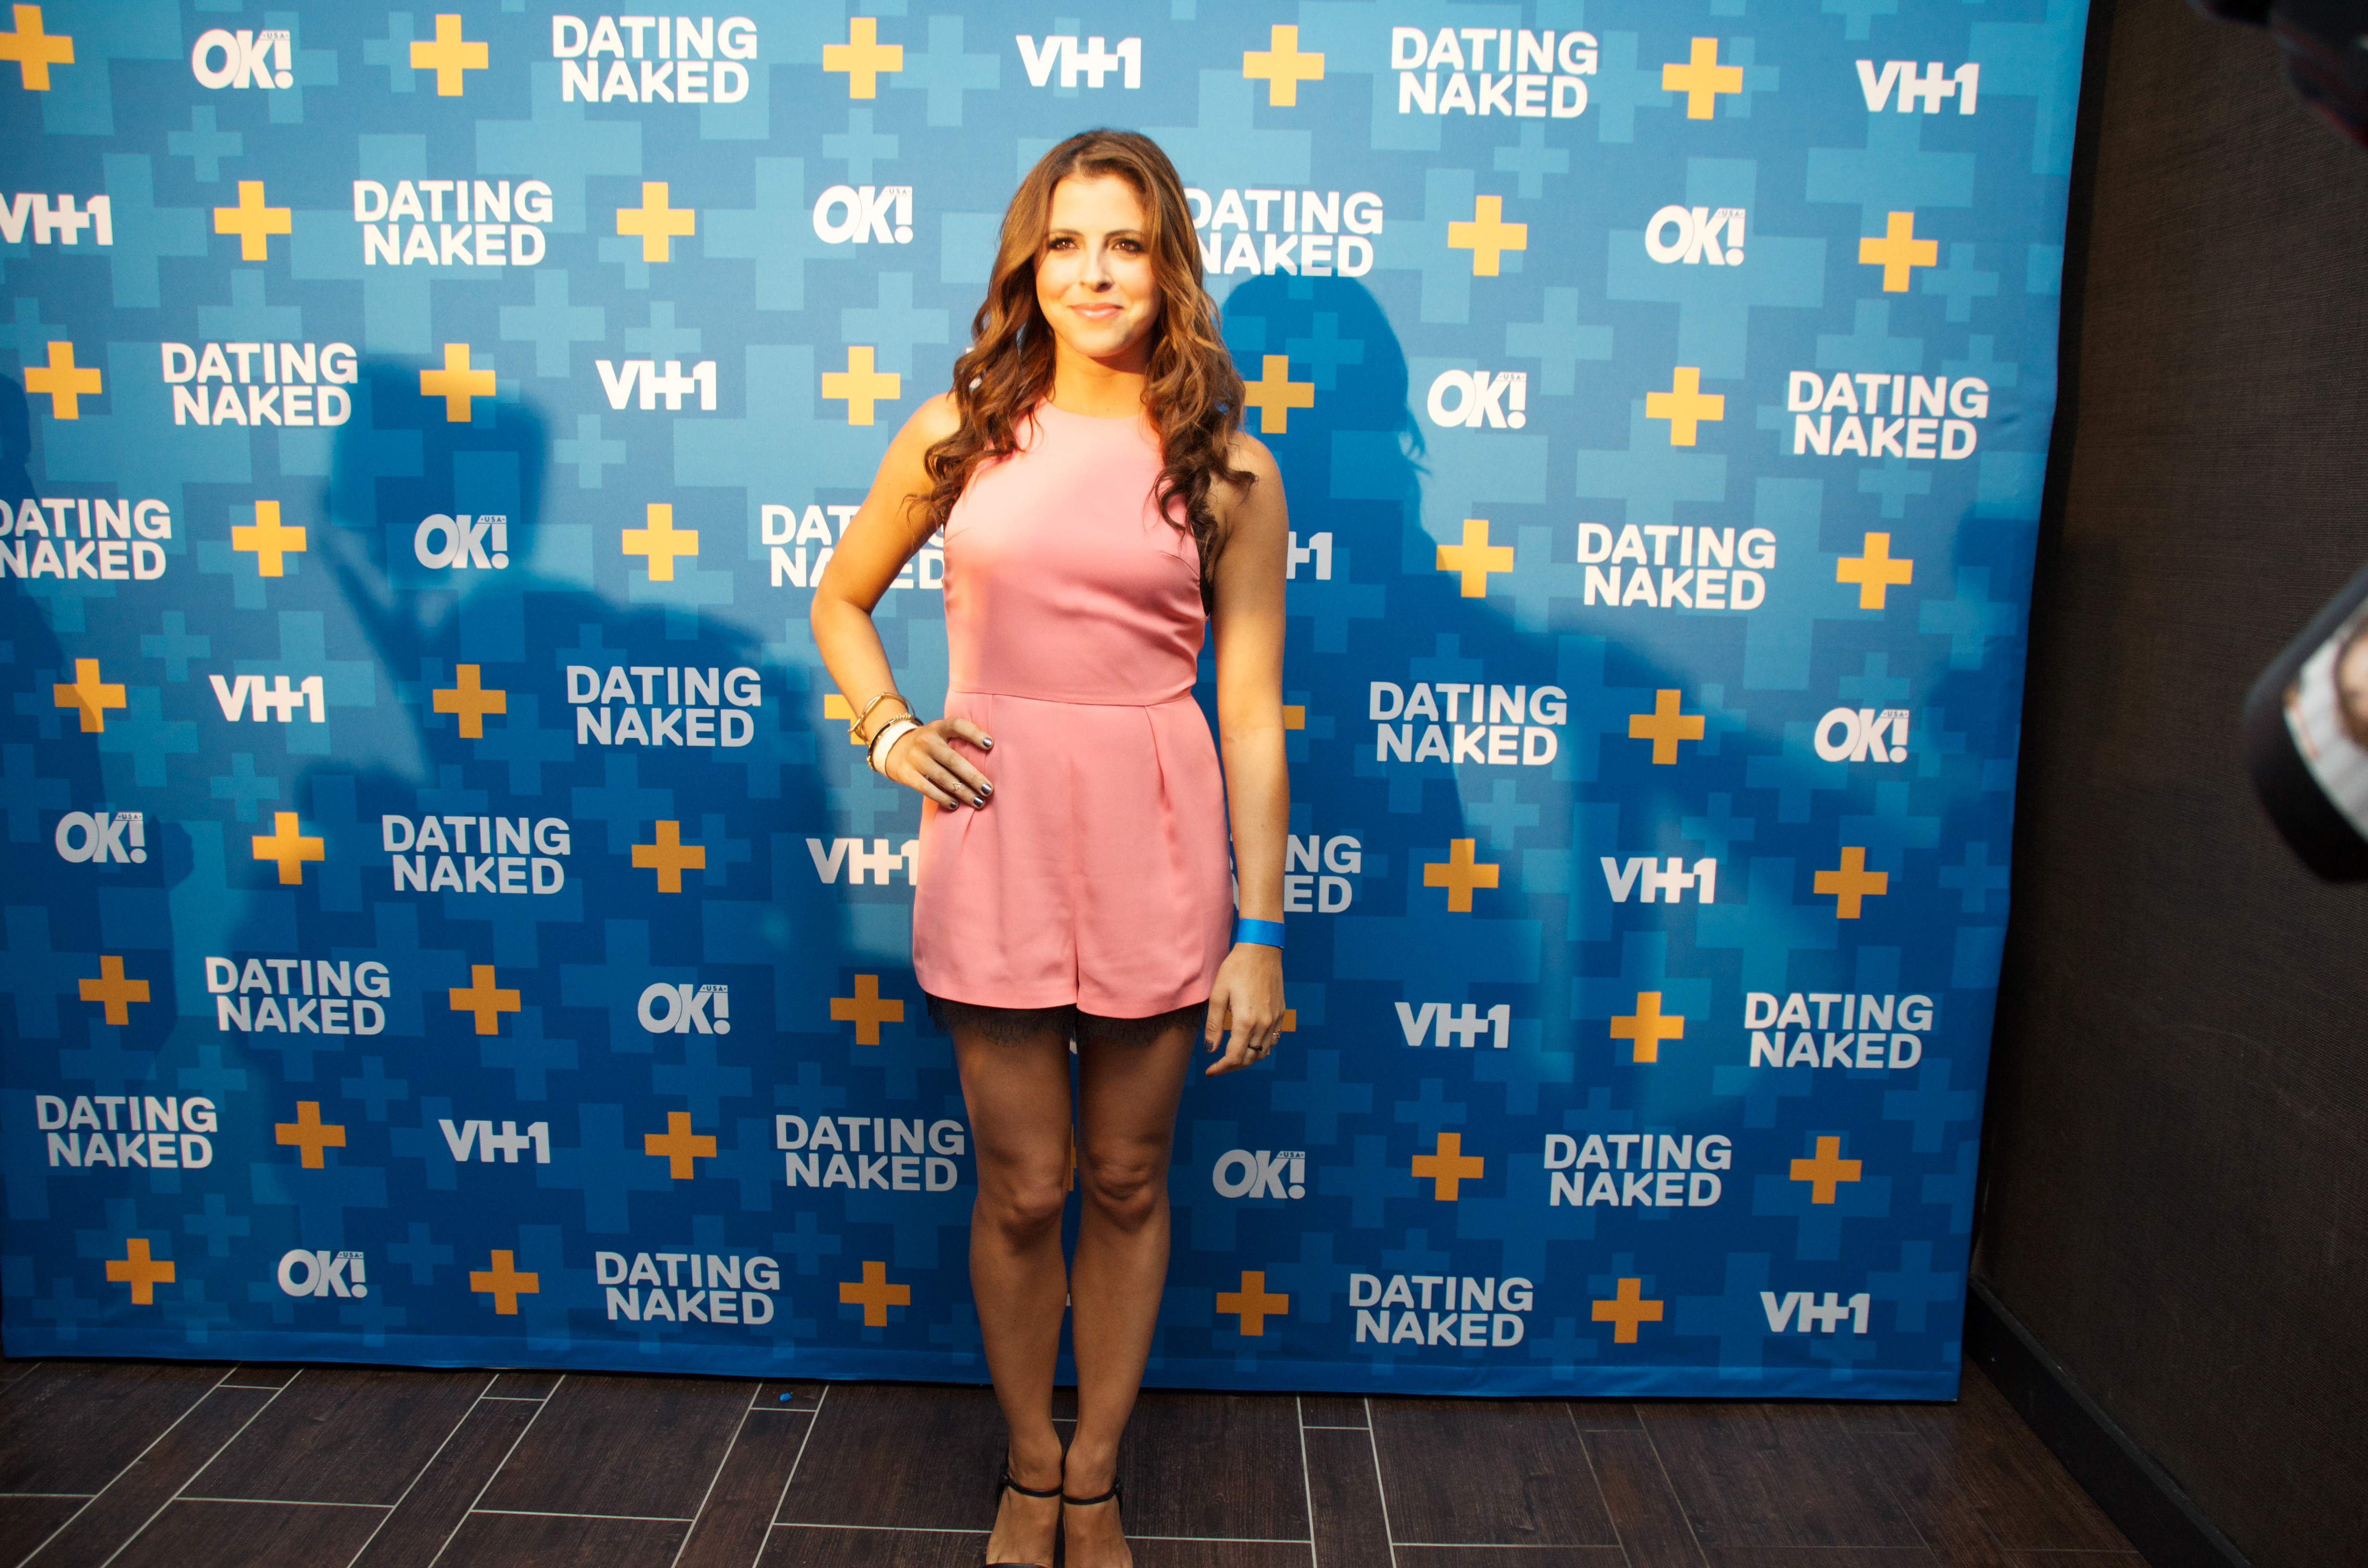 chilli vh1 dating show Get the latest slate of vh1 shows visit vh1com to get the latest full episodes, bonus clips, cast interviews, and exclusive videos.